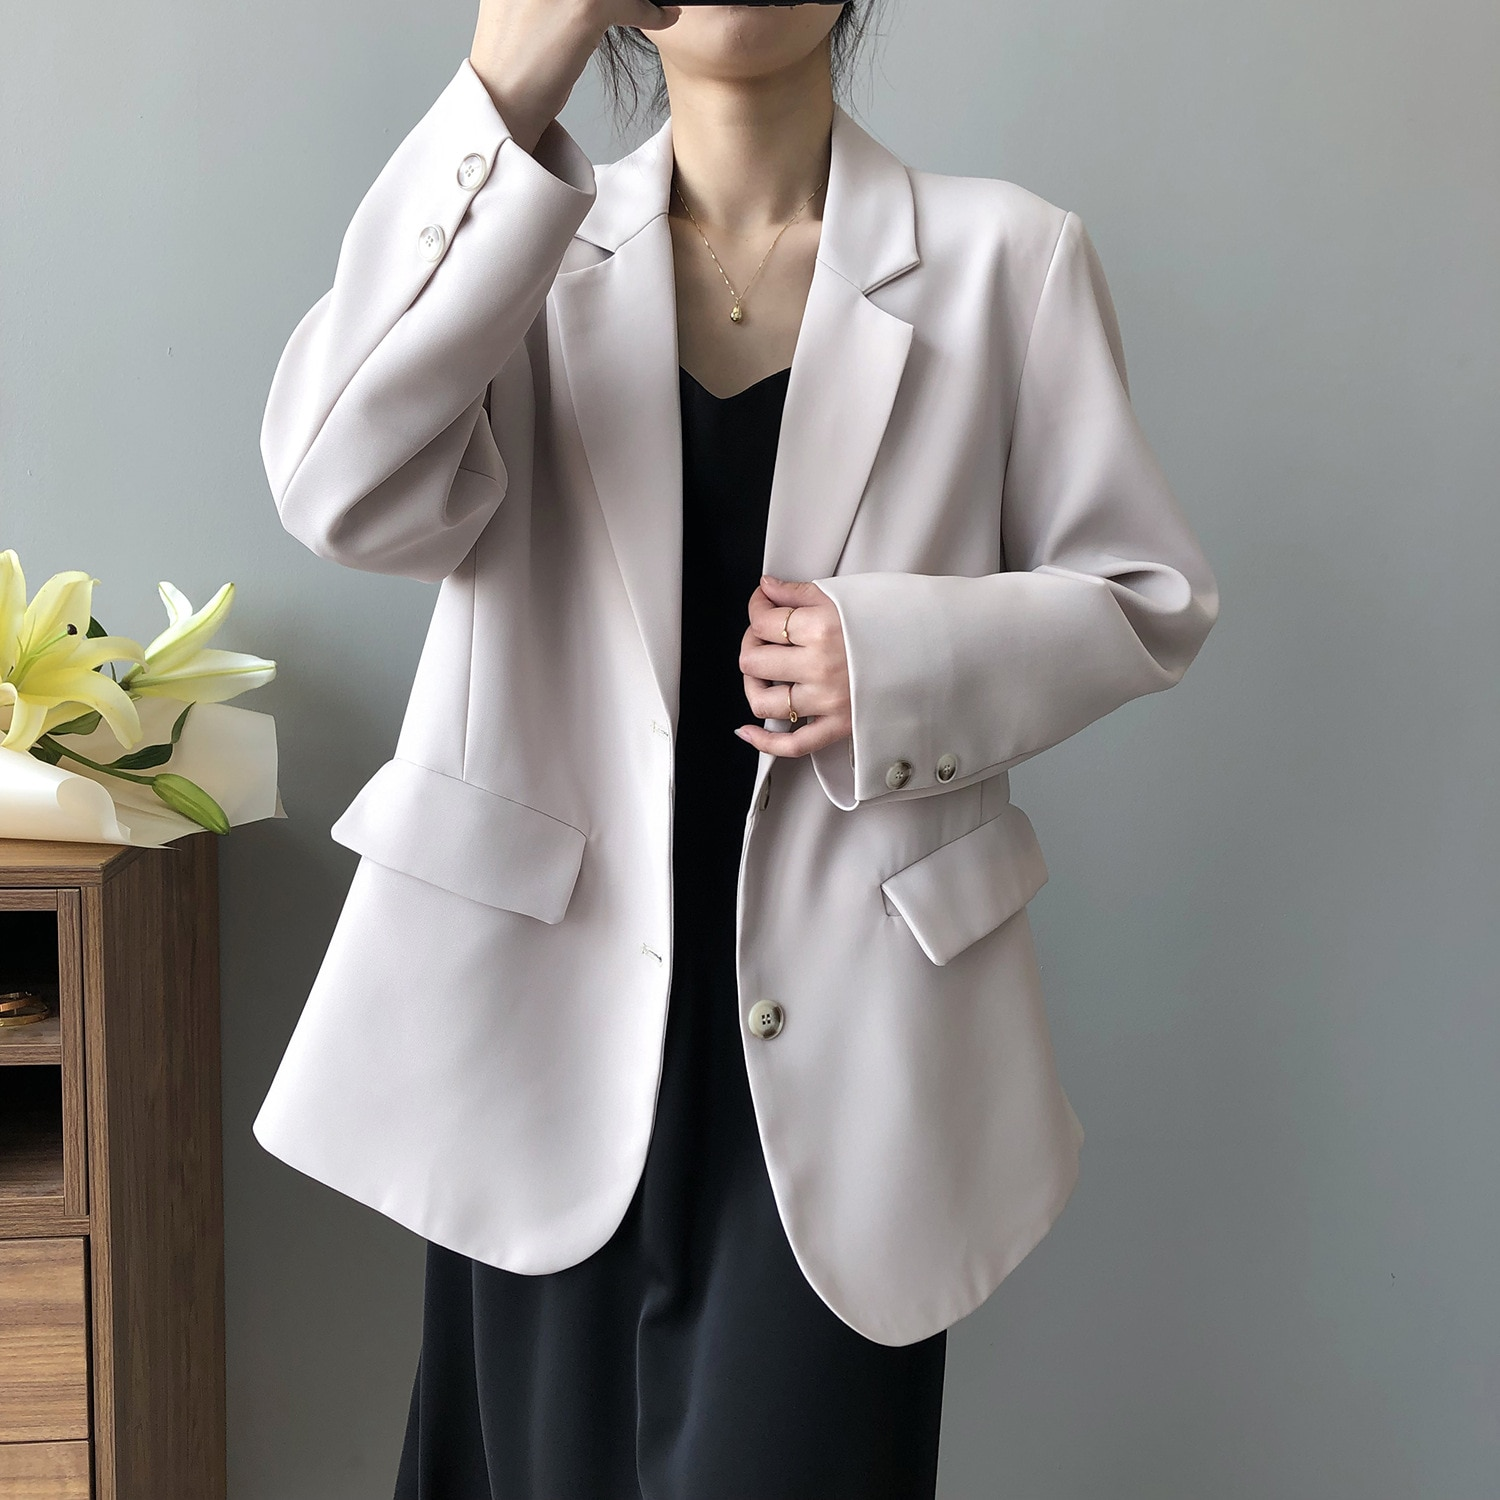 Casual Loose Suit Jacket Women's Spring 2021 New Korean Long Sleeve Shoulder Pad Solid Oversized Bla